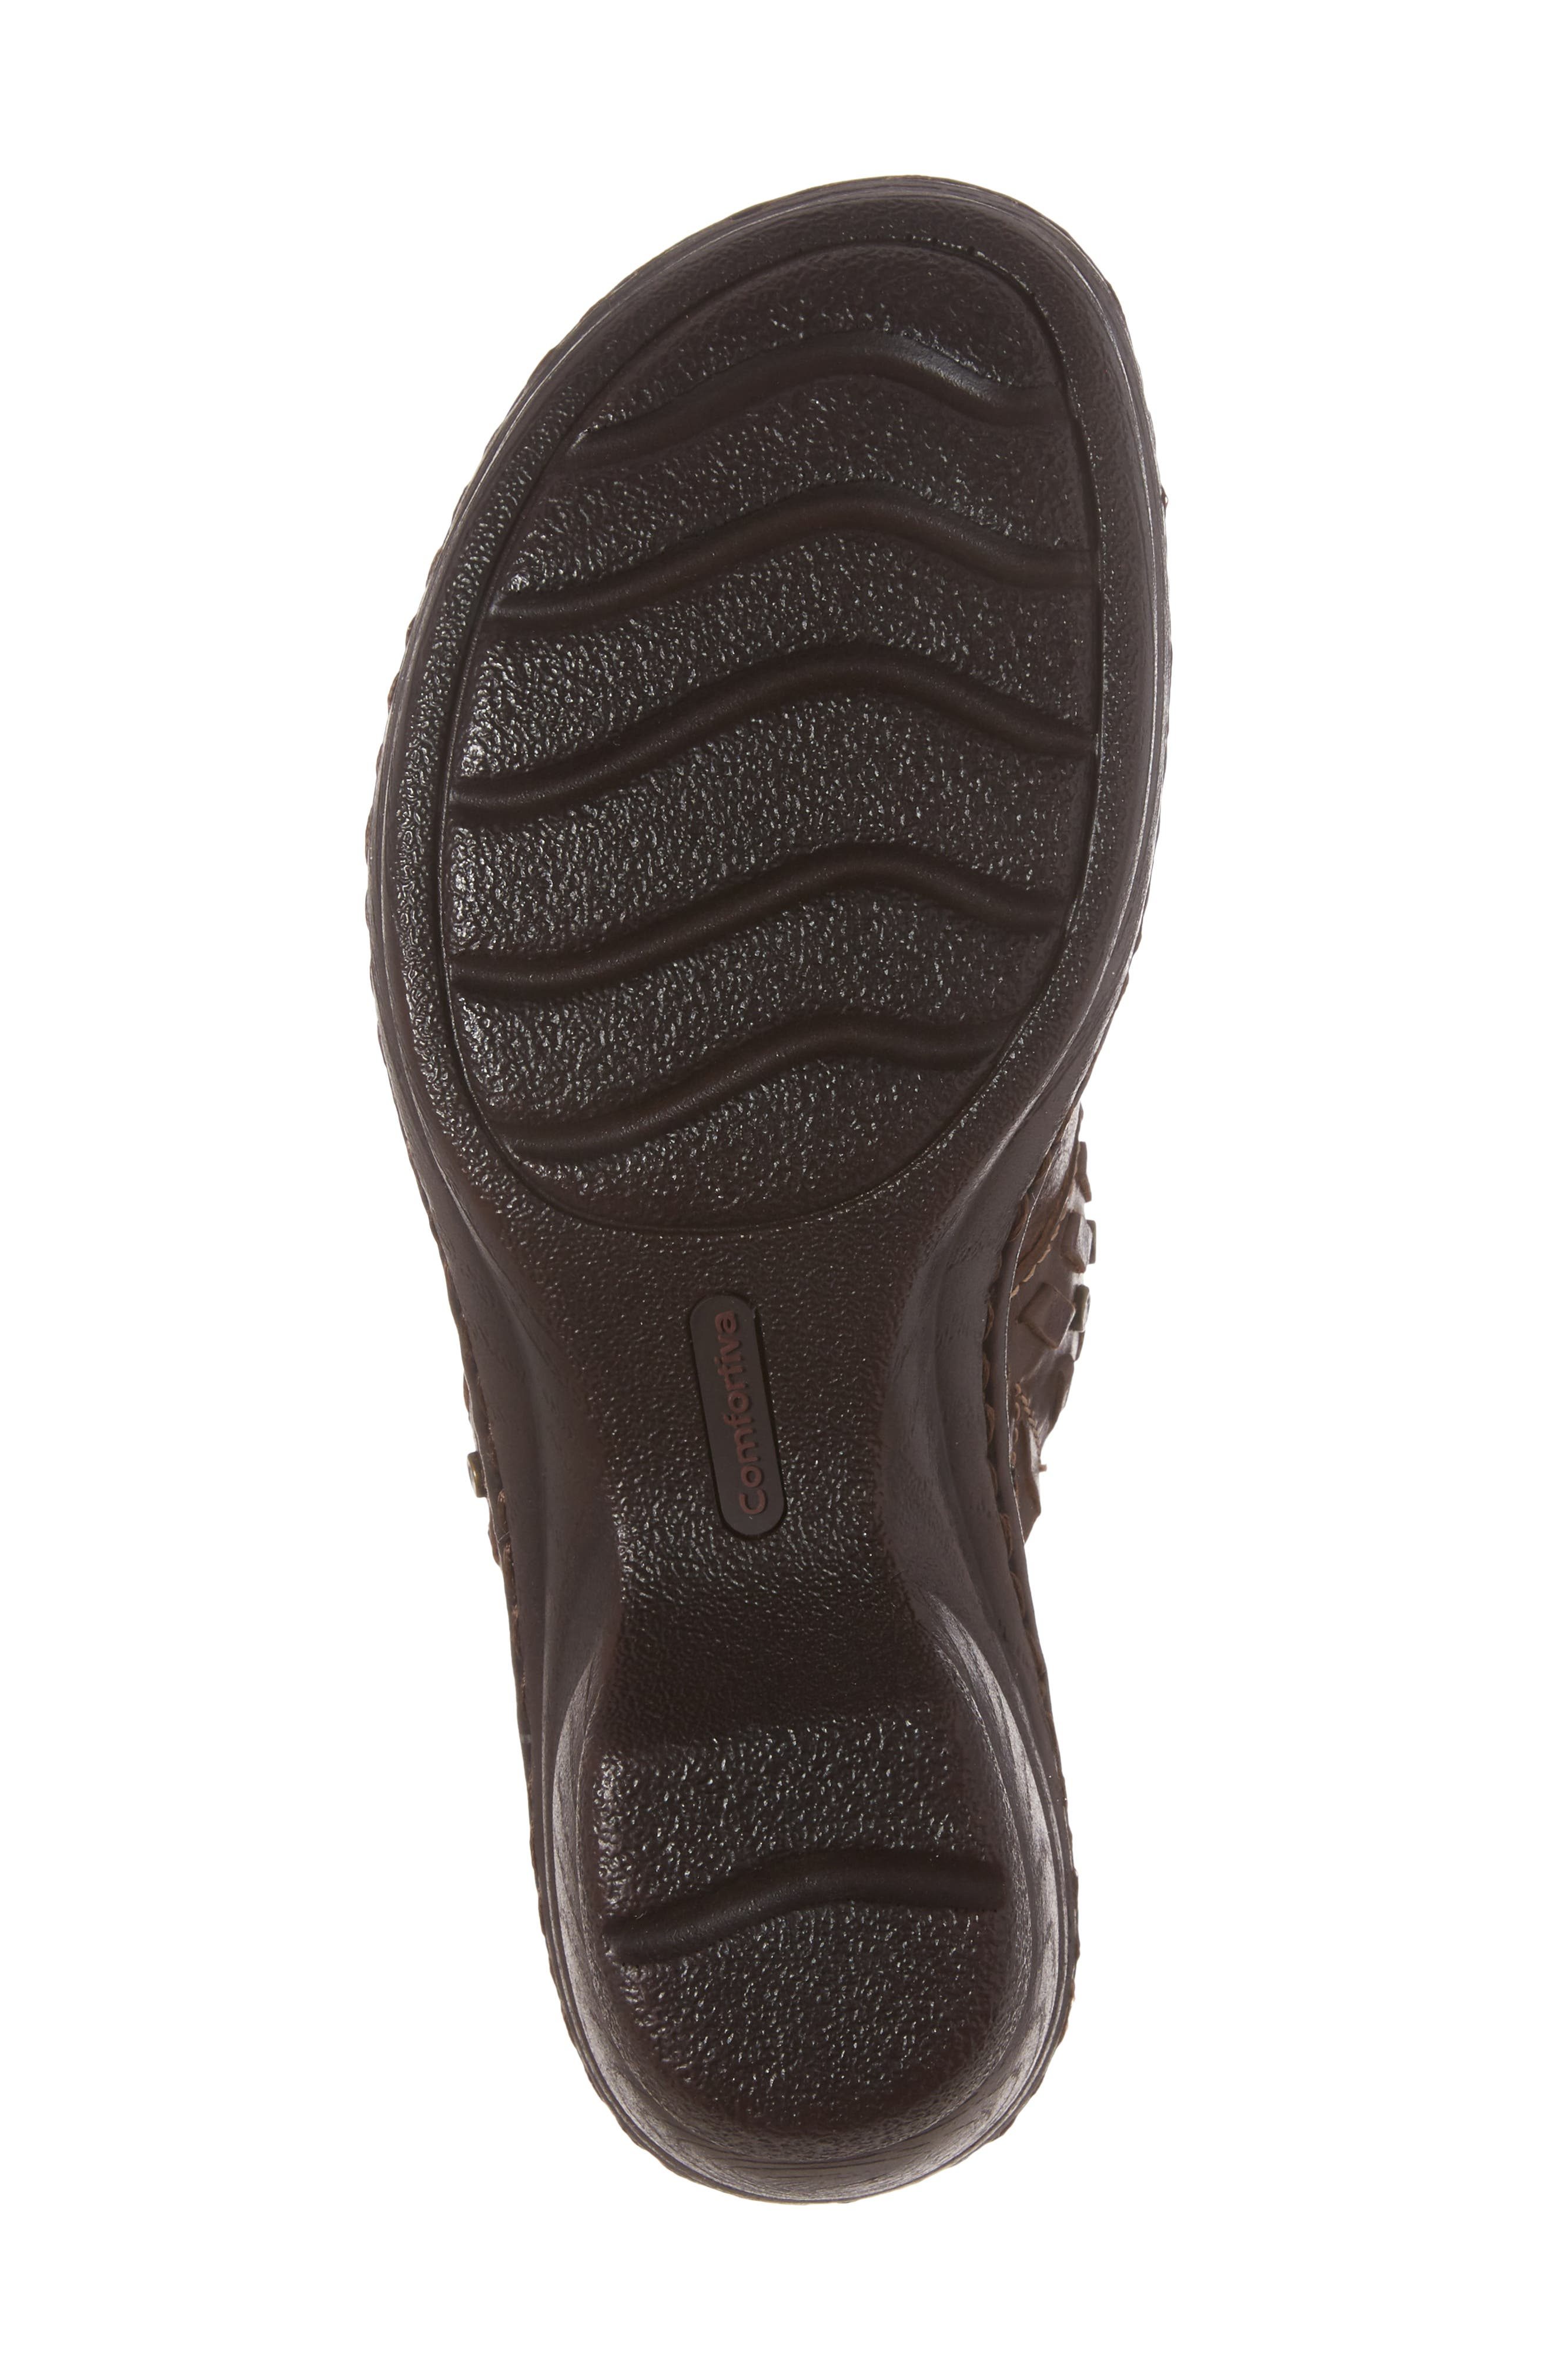 Lorain Clog,                             Alternate thumbnail 6, color,                             Bridle Brown Leather